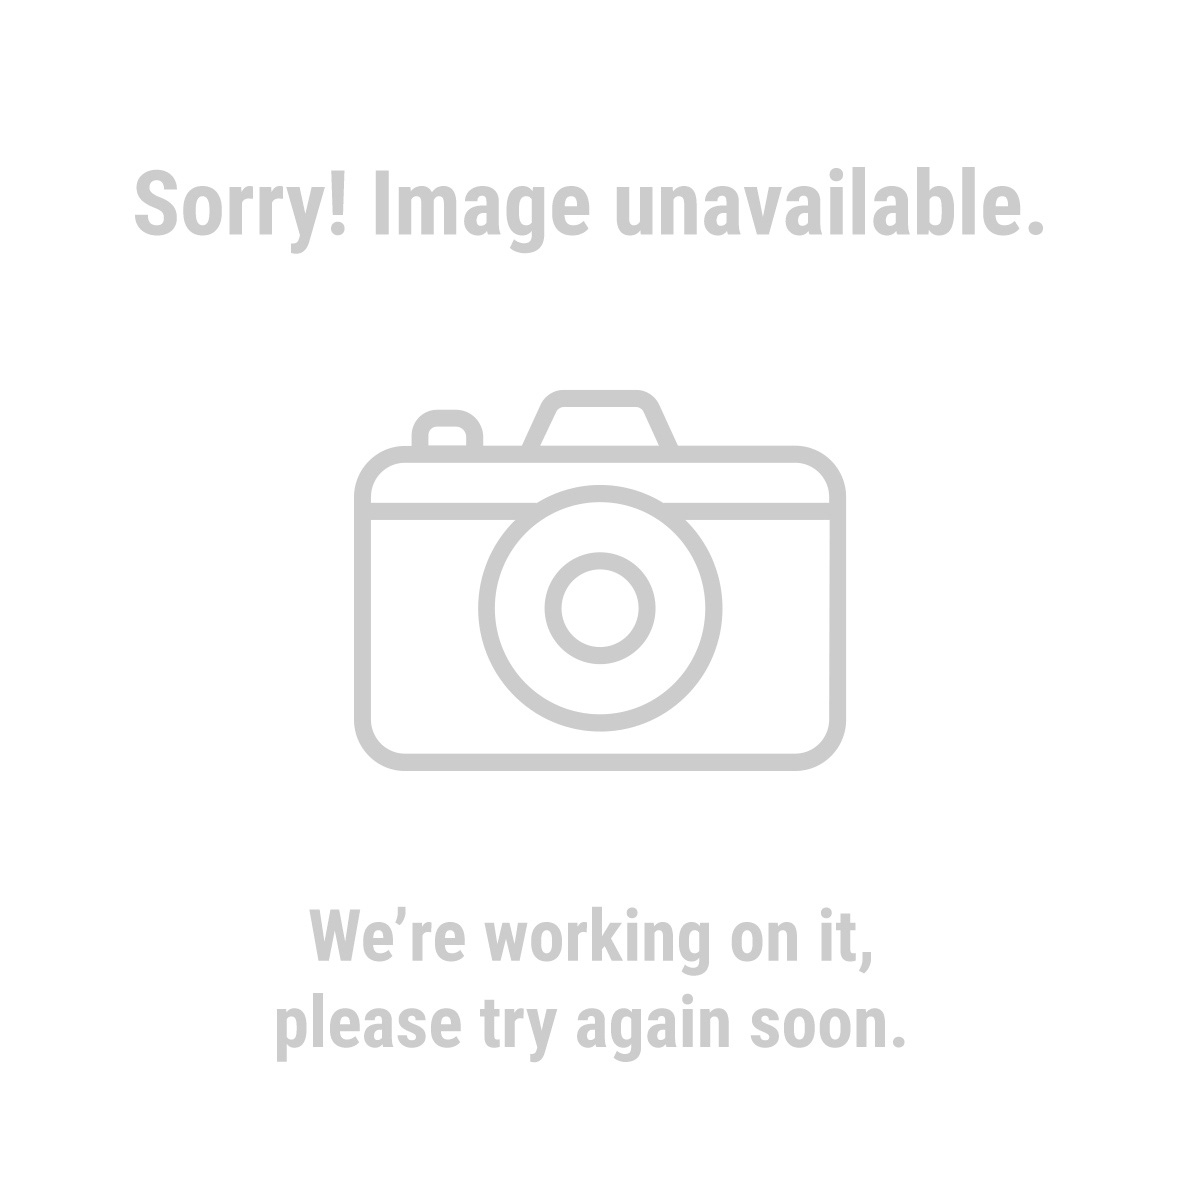 Central Pneumatic 69433 1/6 Horsepower, 58 PSI Oilless Airbrush Compressor